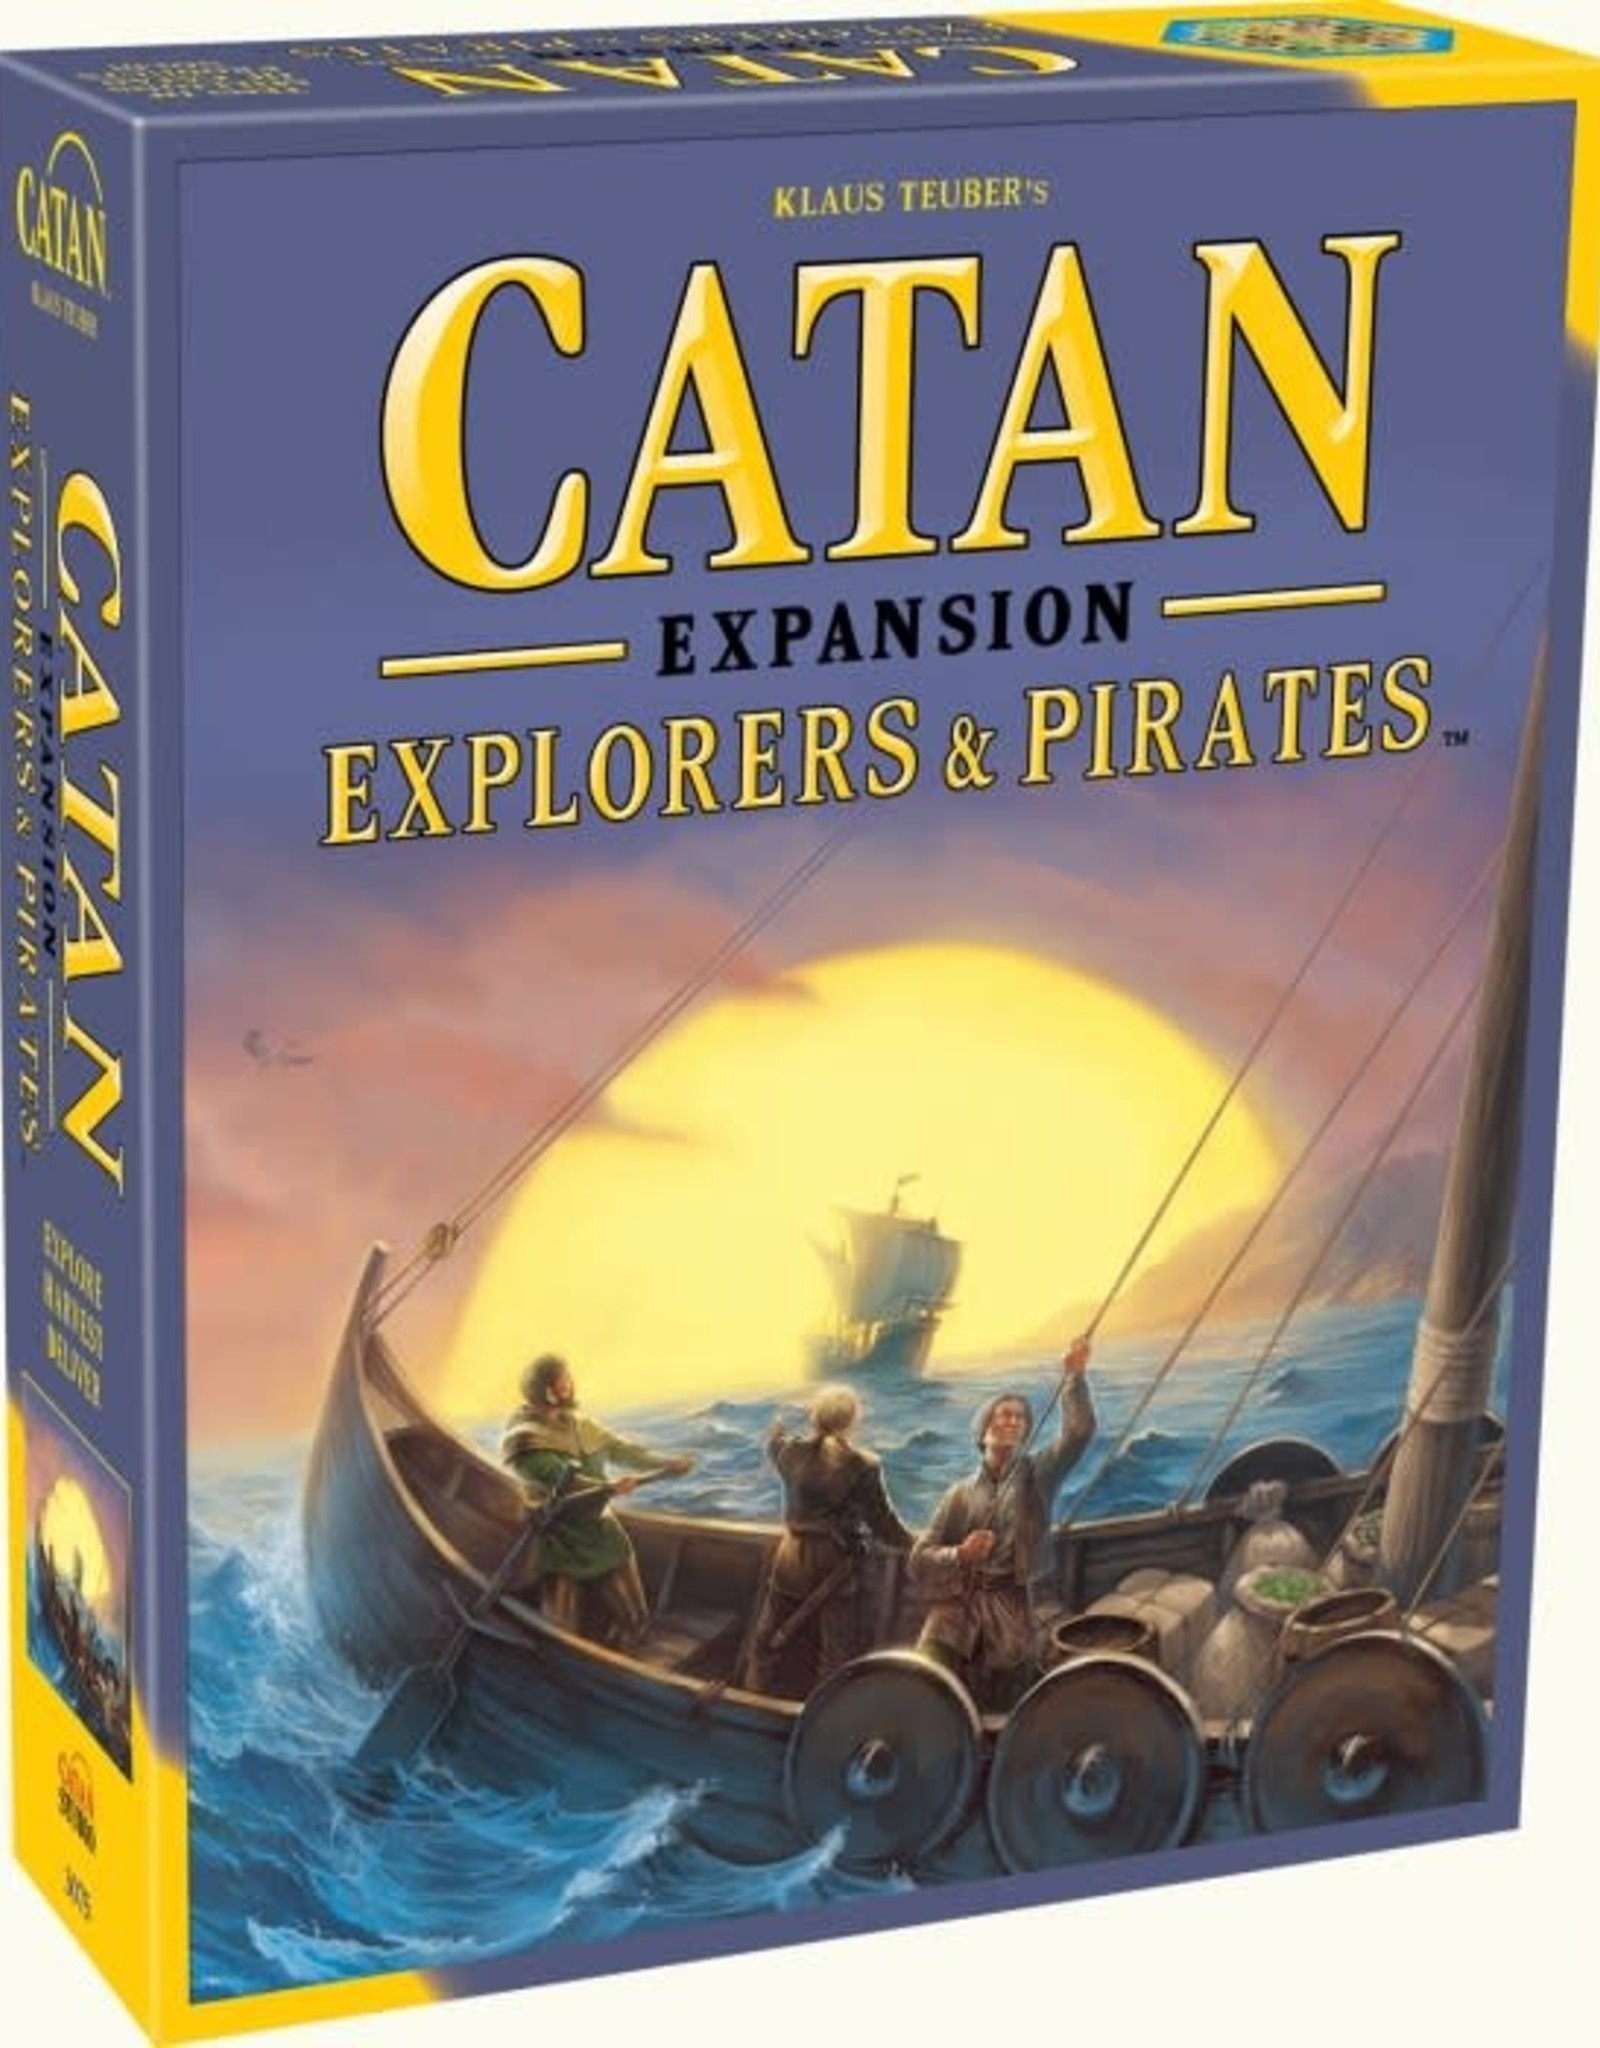 Catan Studios Catan Explorers & Pirates